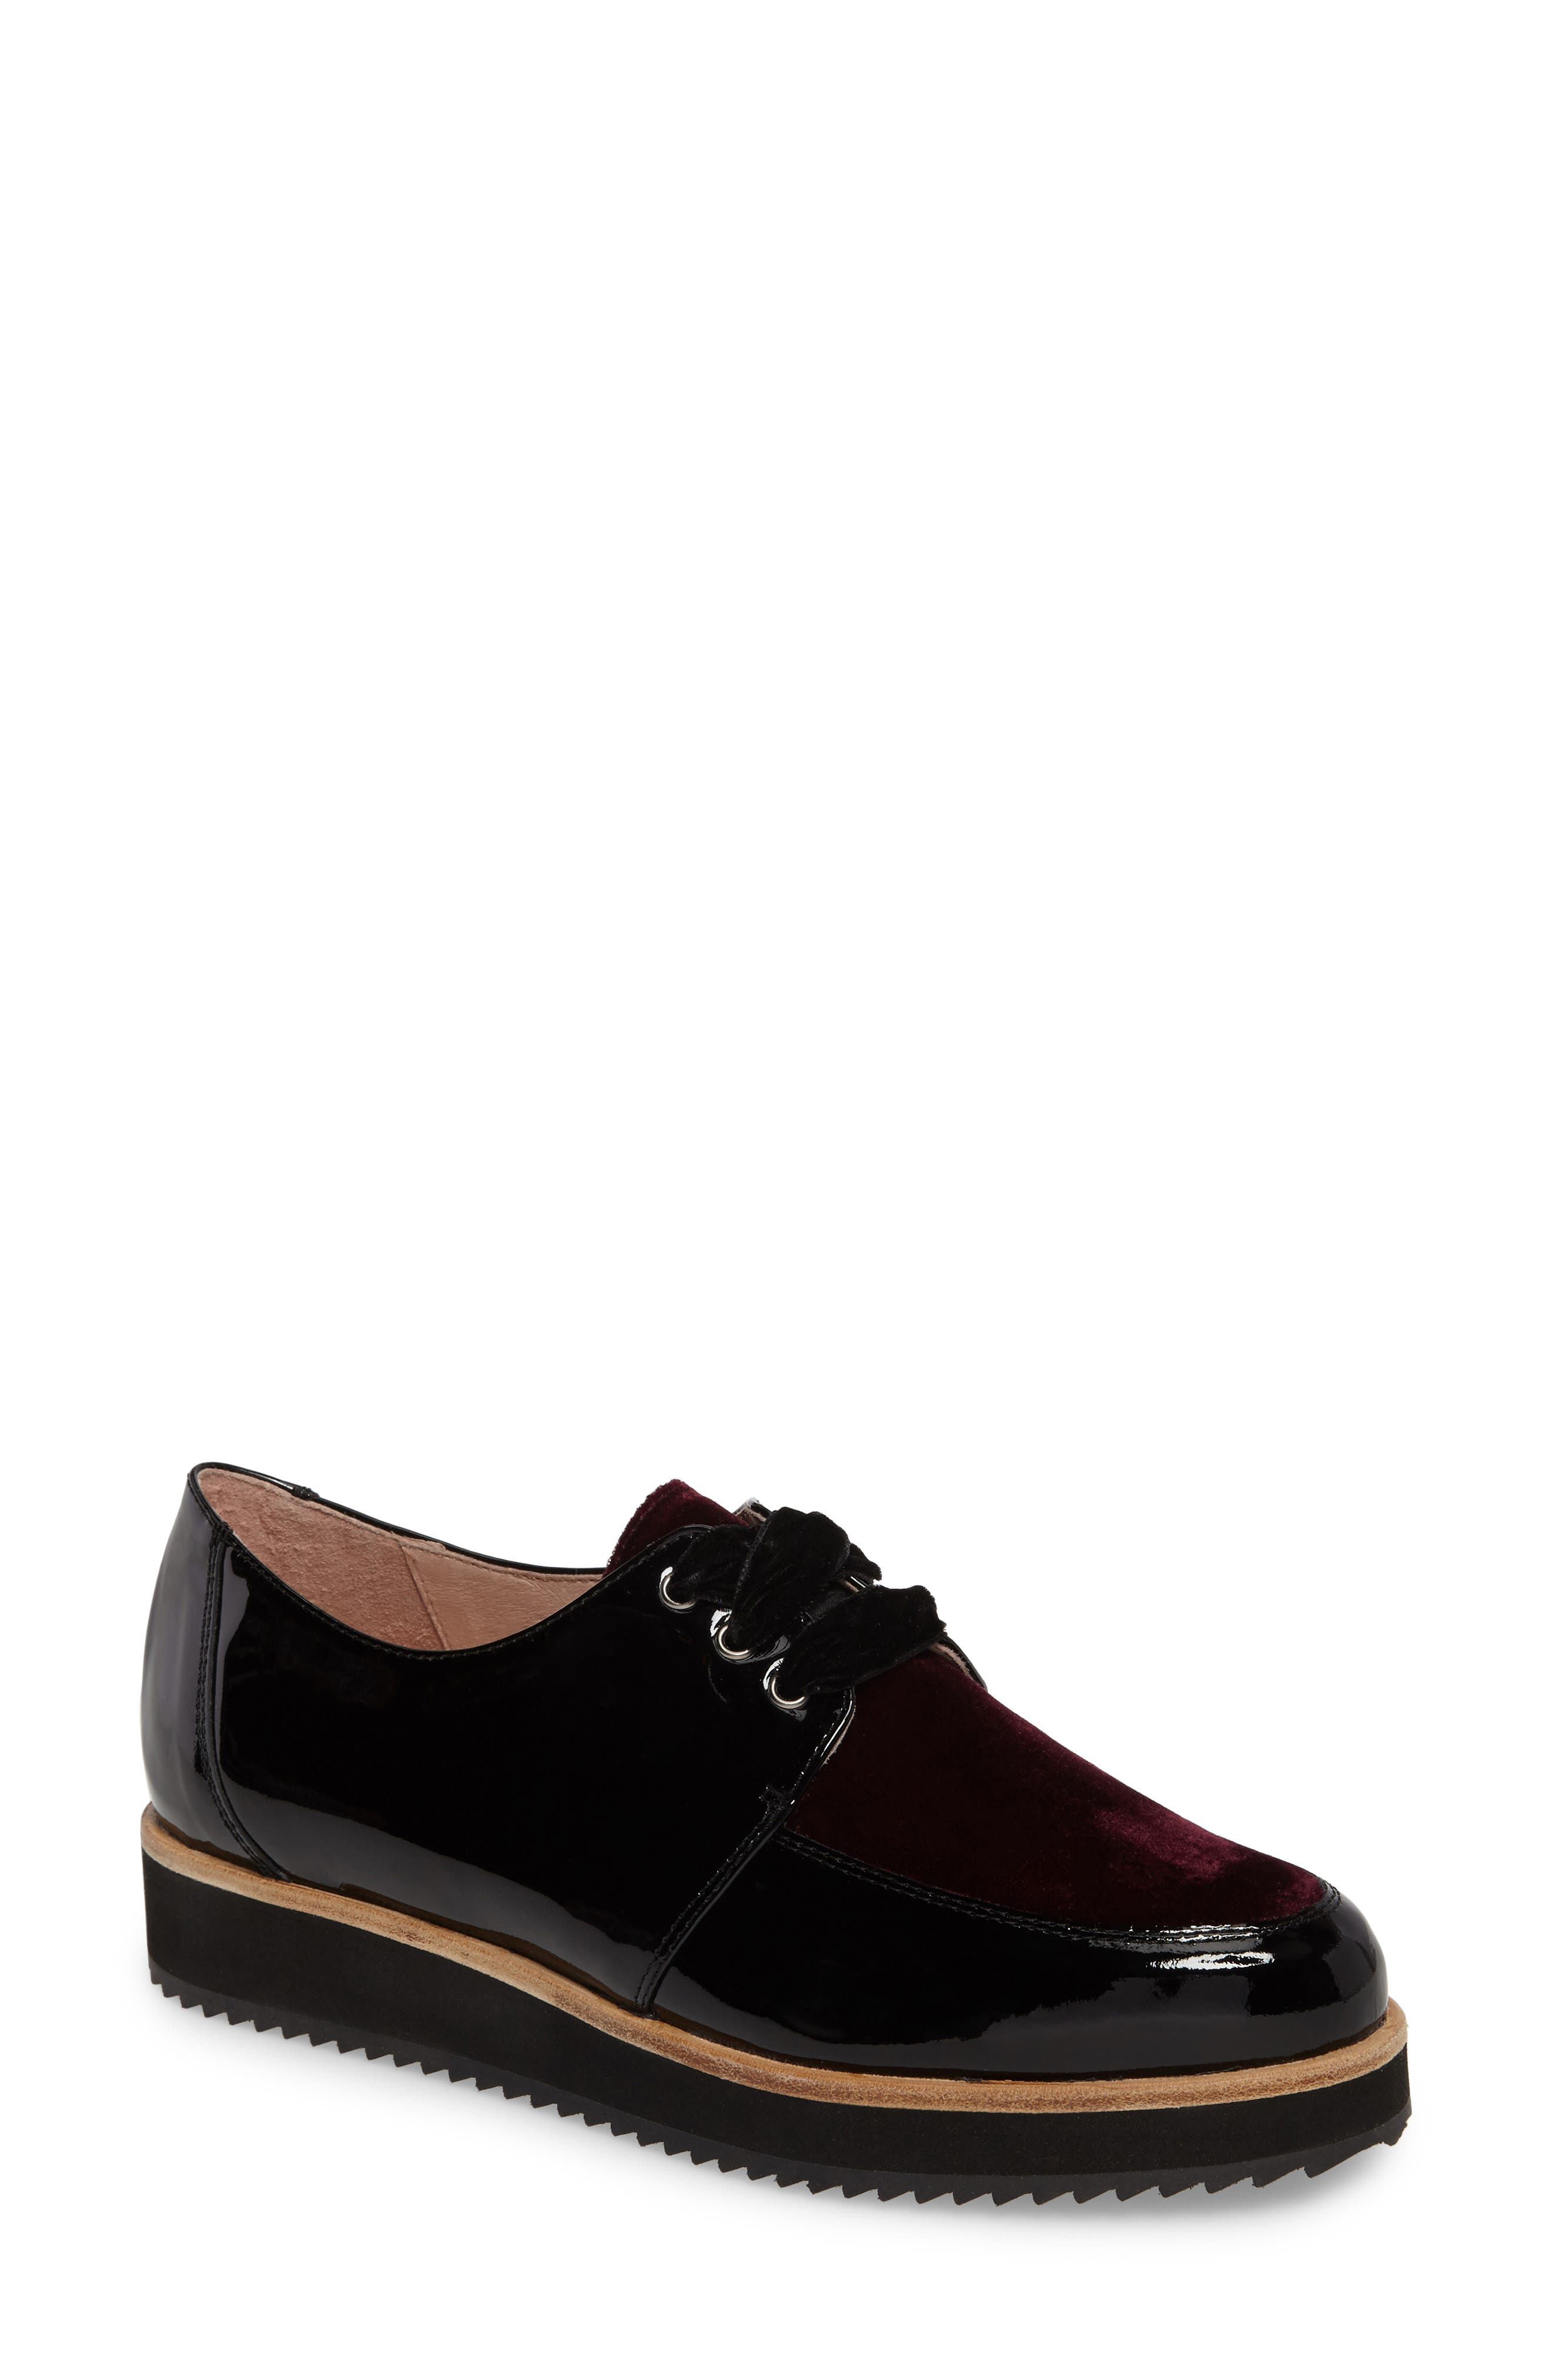 Reese Platform Oxford,                             Main thumbnail 1, color,                             Burgundy Patent